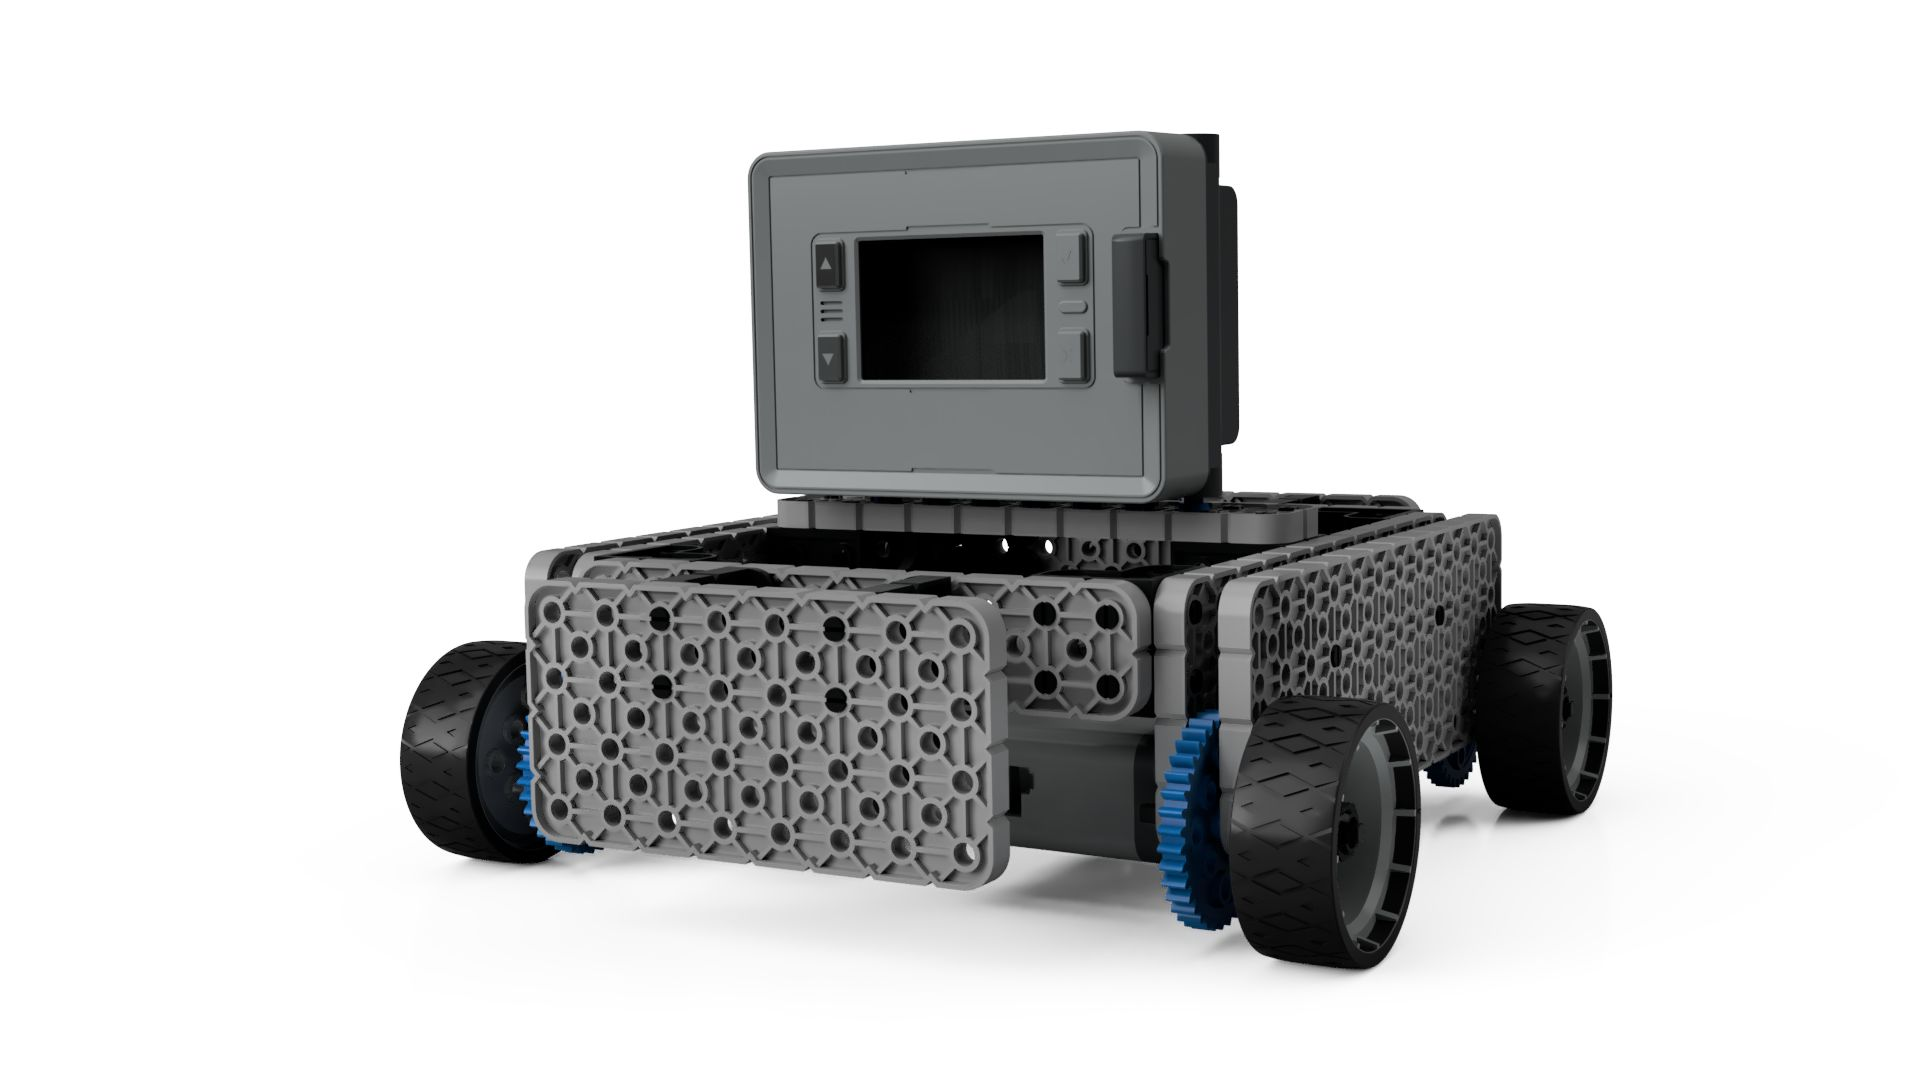 The-power-turtle-drivetrain---vex-iq-robotics-2019-may-25-06-10-22pm-000-customizedview14930081253-png-3500-3500